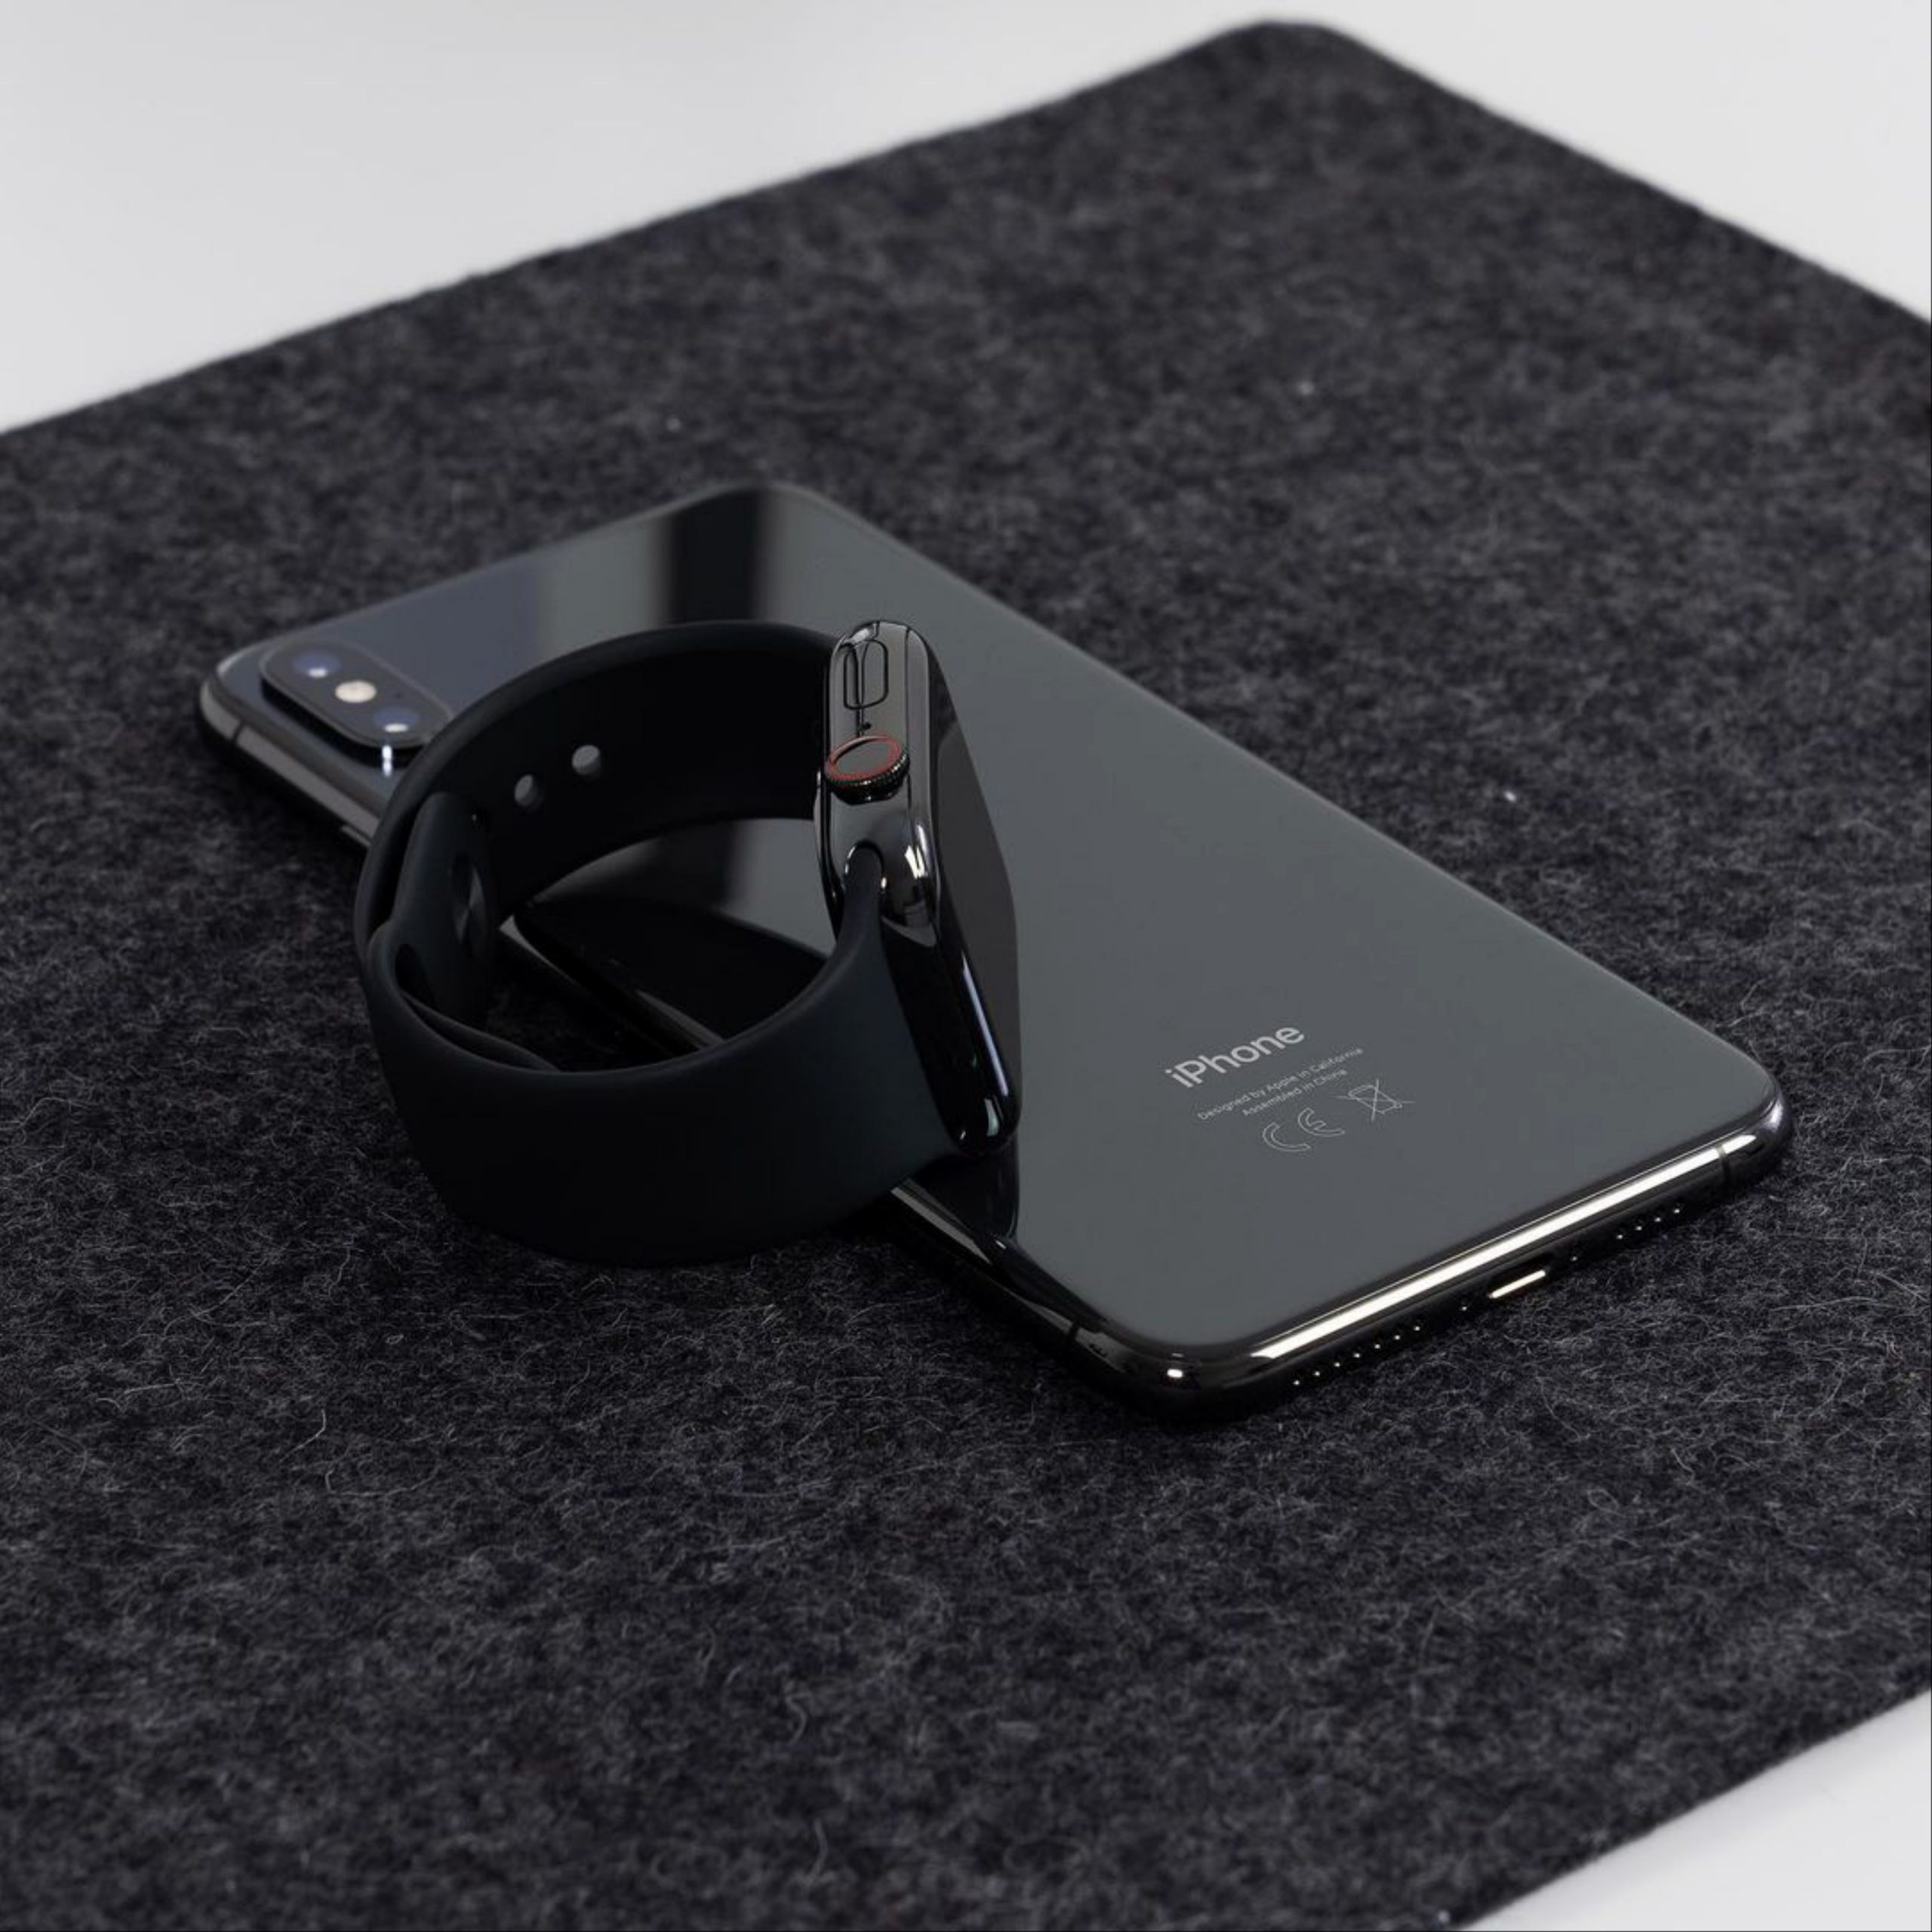 A smartwatch and iPhone